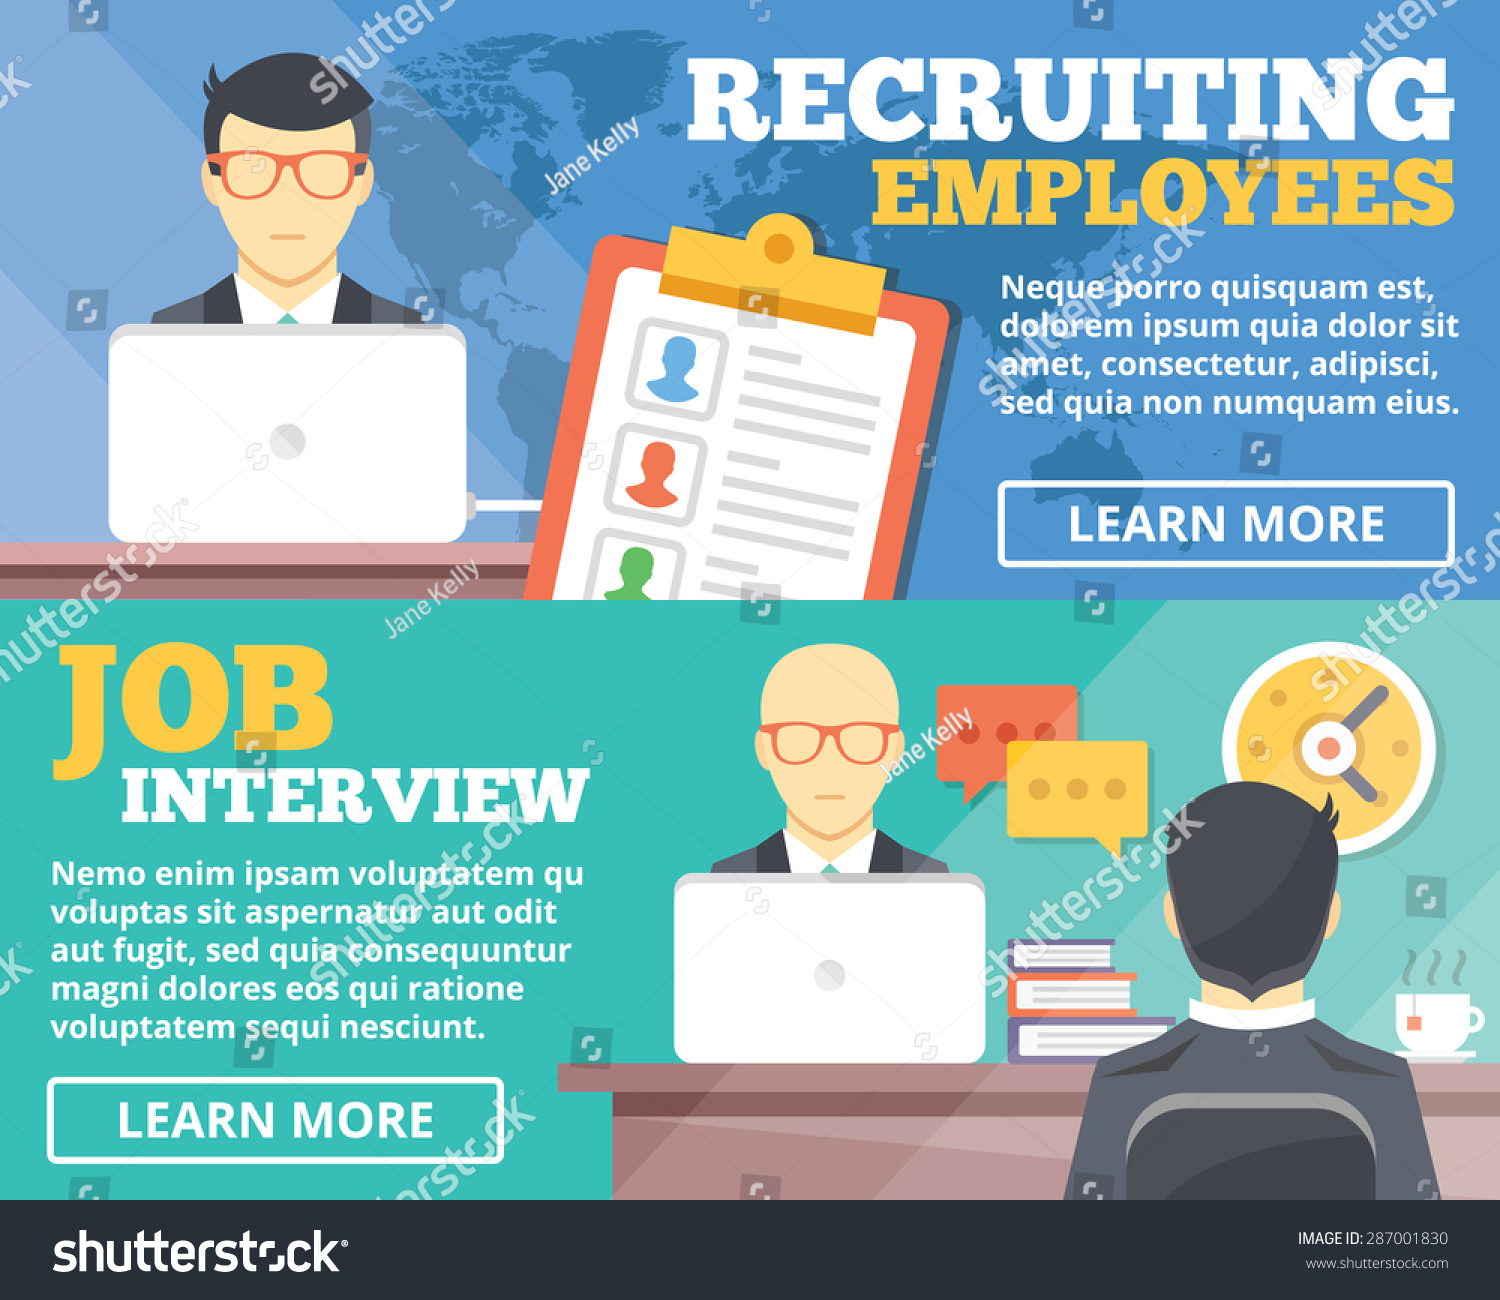 recruiting employees job interview flat illustration stock vector recruiting employees job interview flat illustration concepts set flat design concepts for web banners